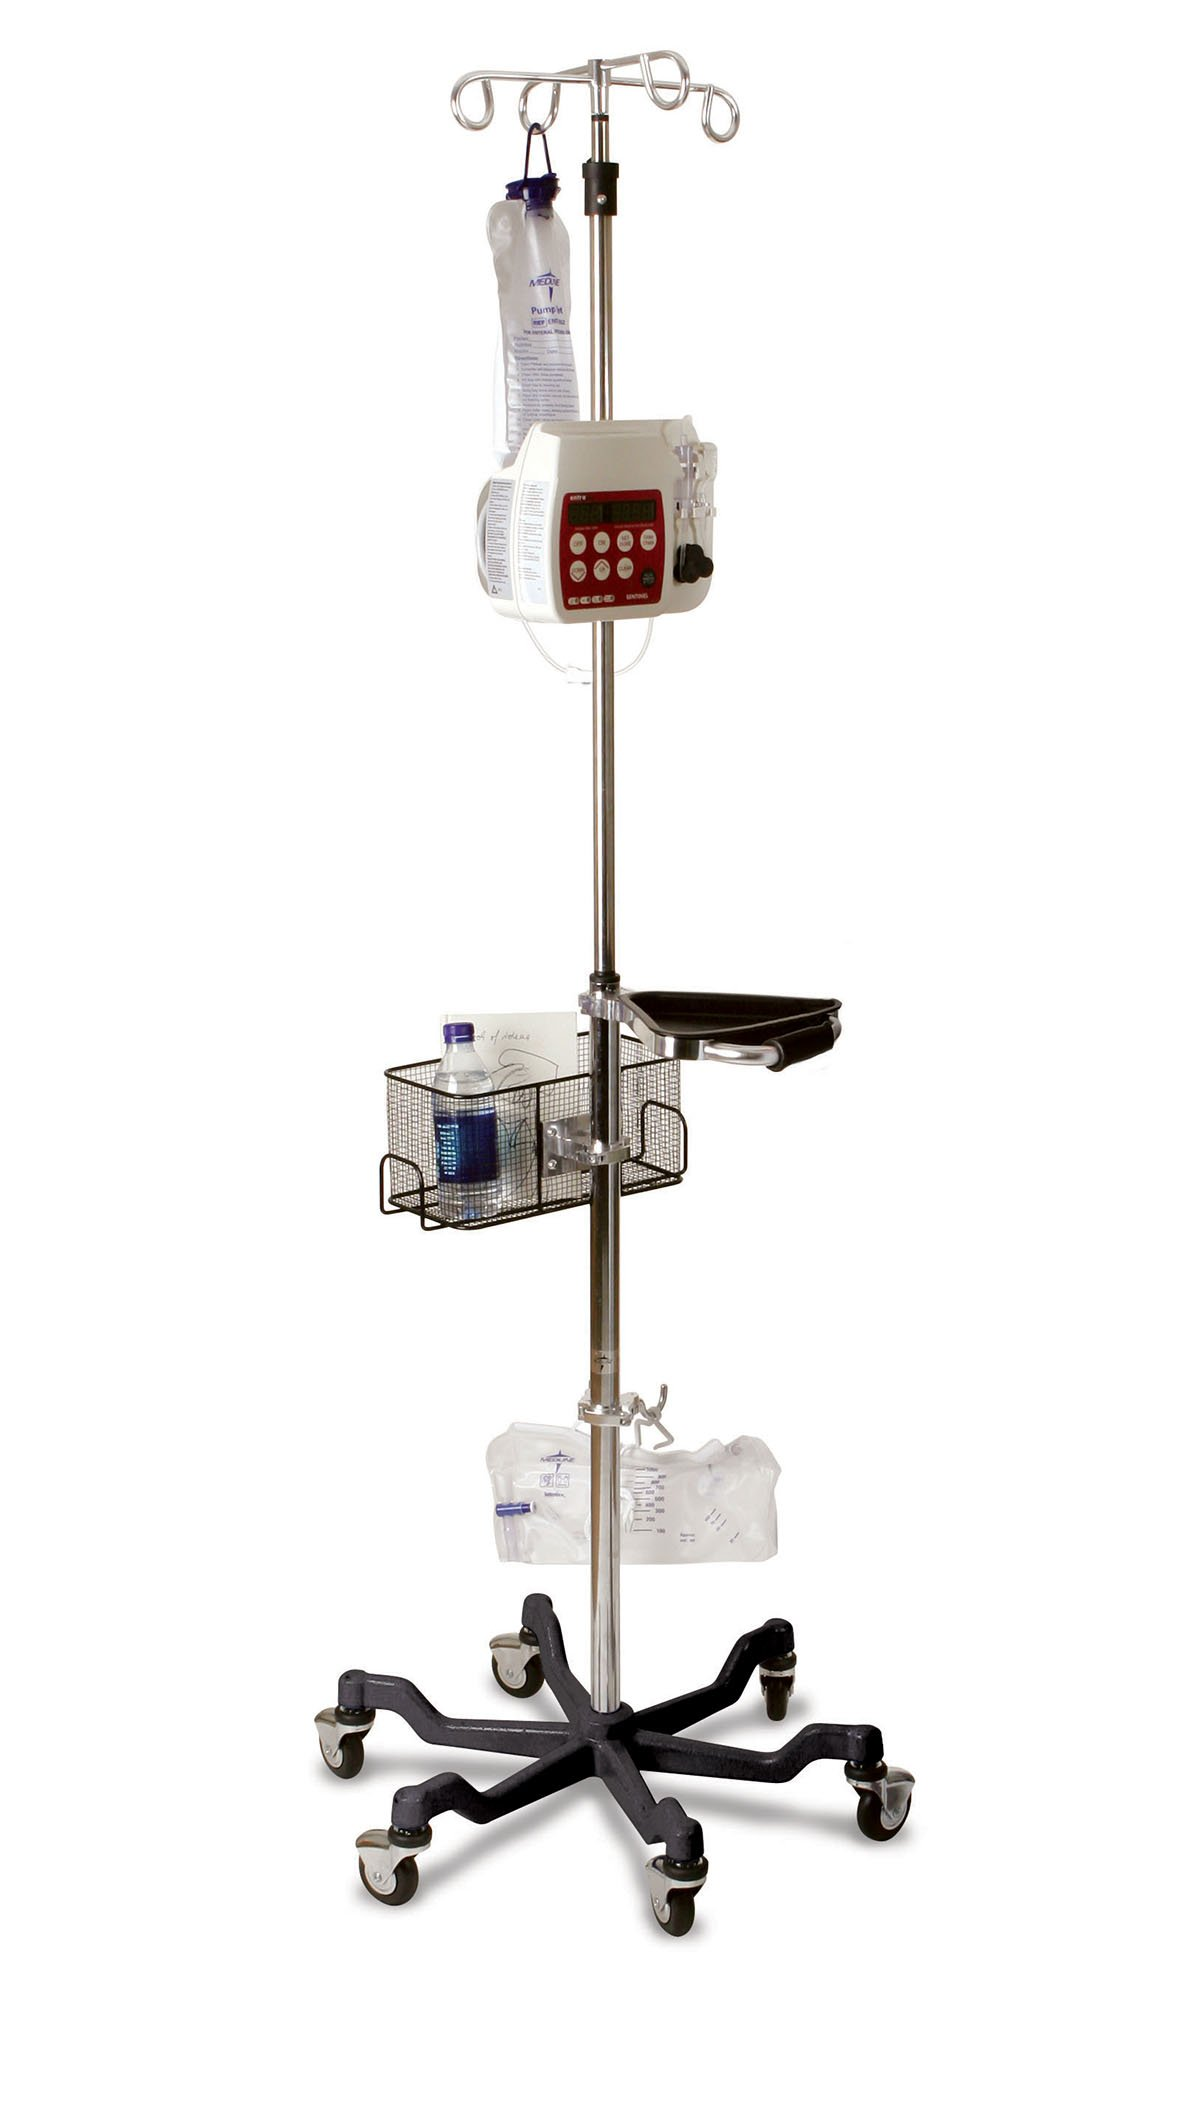 Medline MDS80600BLK Six Leg Heavy Duty IV Pole Stand, 4 Hook, Stainless Steel, Latex Free, 73'' to 99.5'' Adjustable Height, Red Base (Pack of 2)